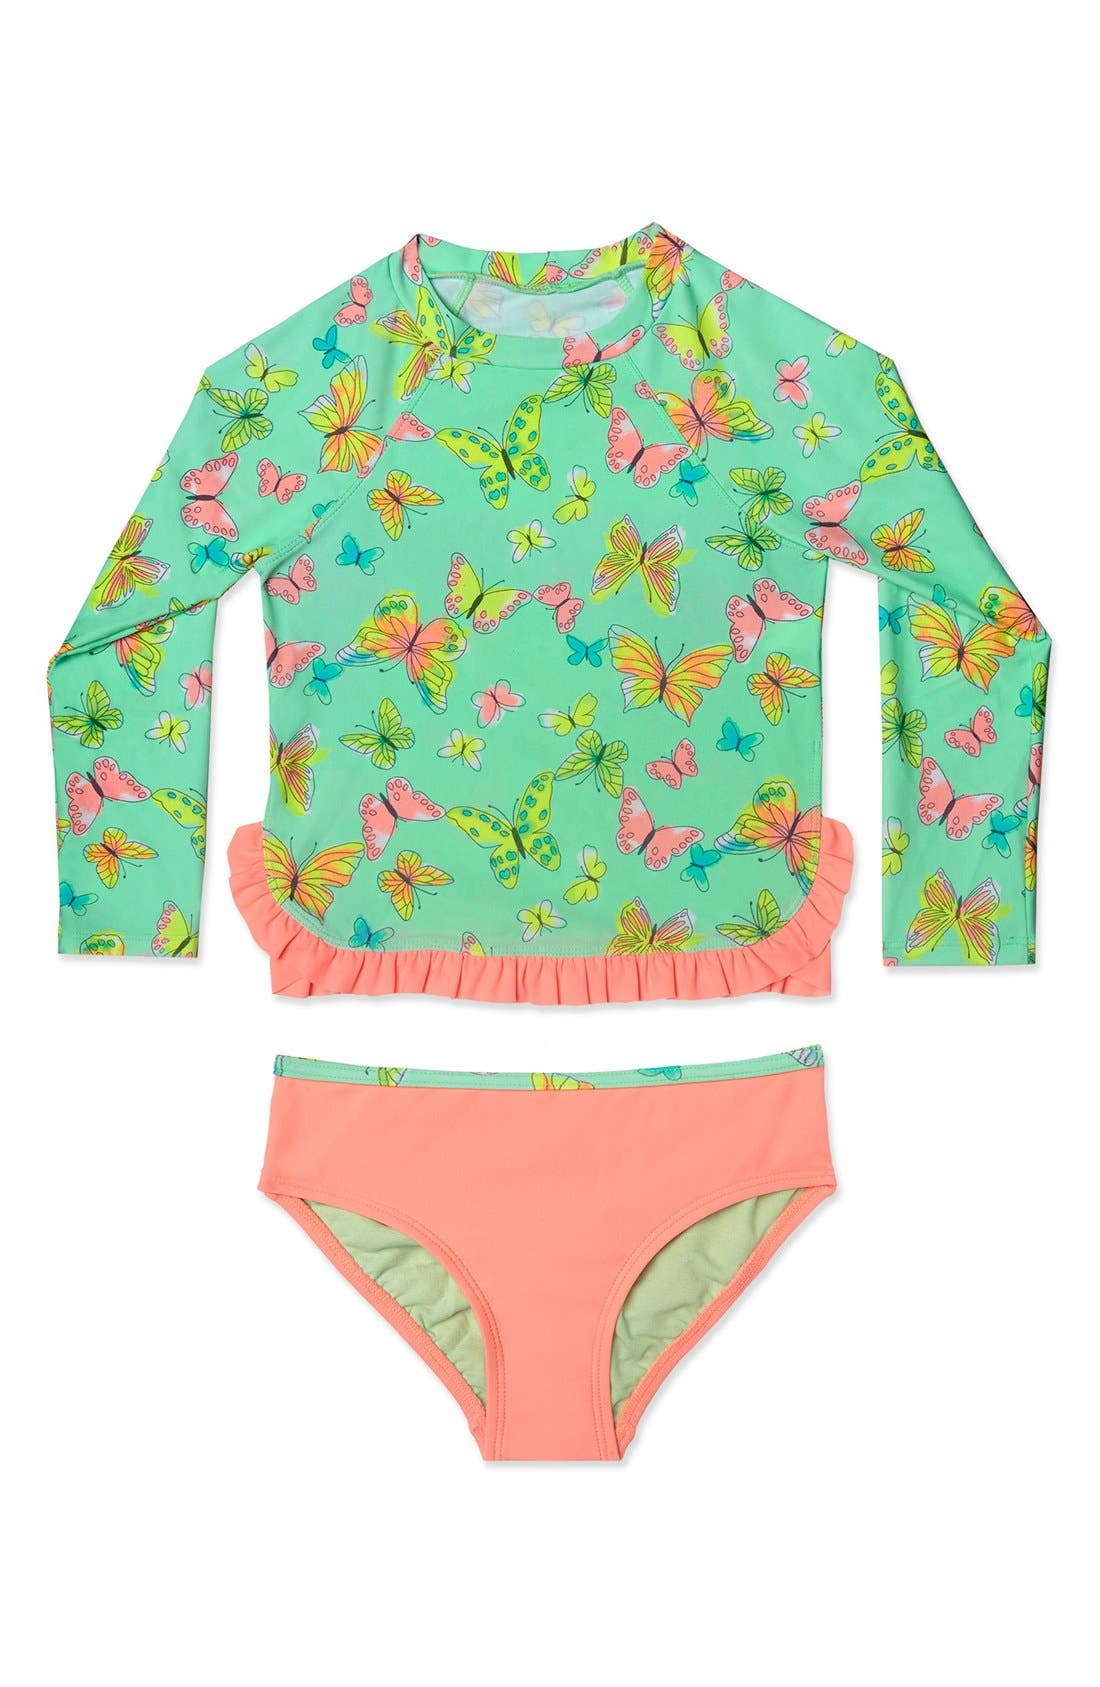 Alternate Image 1 Selected - Hula Star 'Butterfly' Two-Piece Rashguard Swimsuit (Toddler Girls & Little Girls)